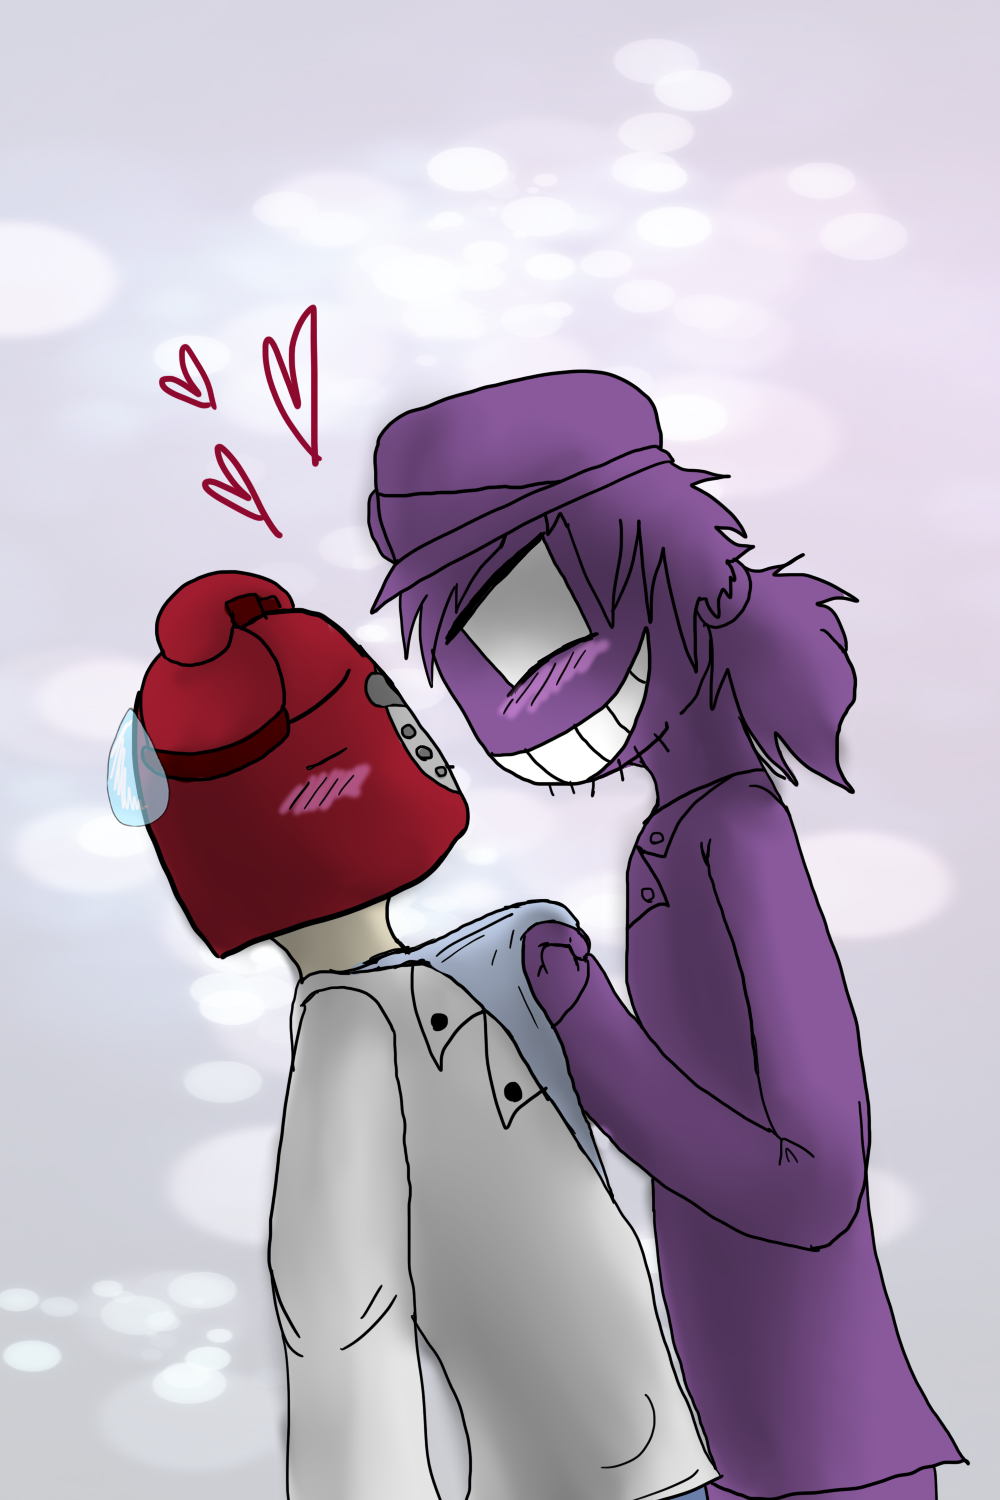 Phone guy x purple guy fanfic lemon - Phone Guy X Purple Guy